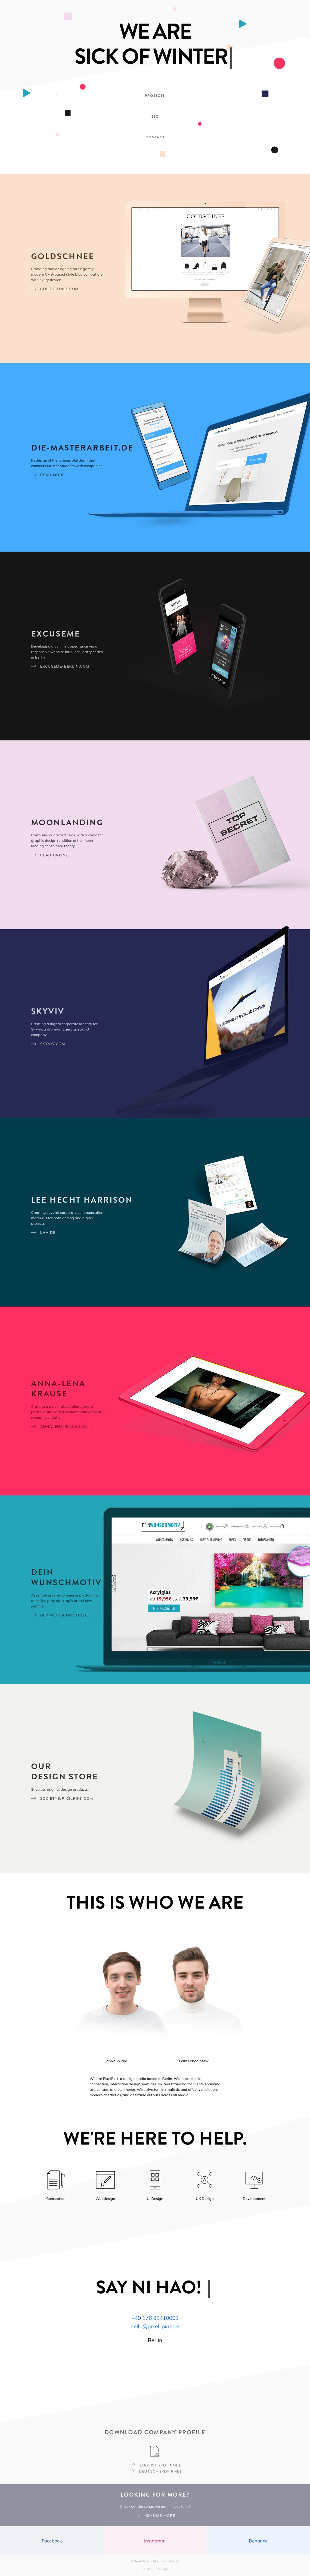 PixelPink – Design Studio Berlin